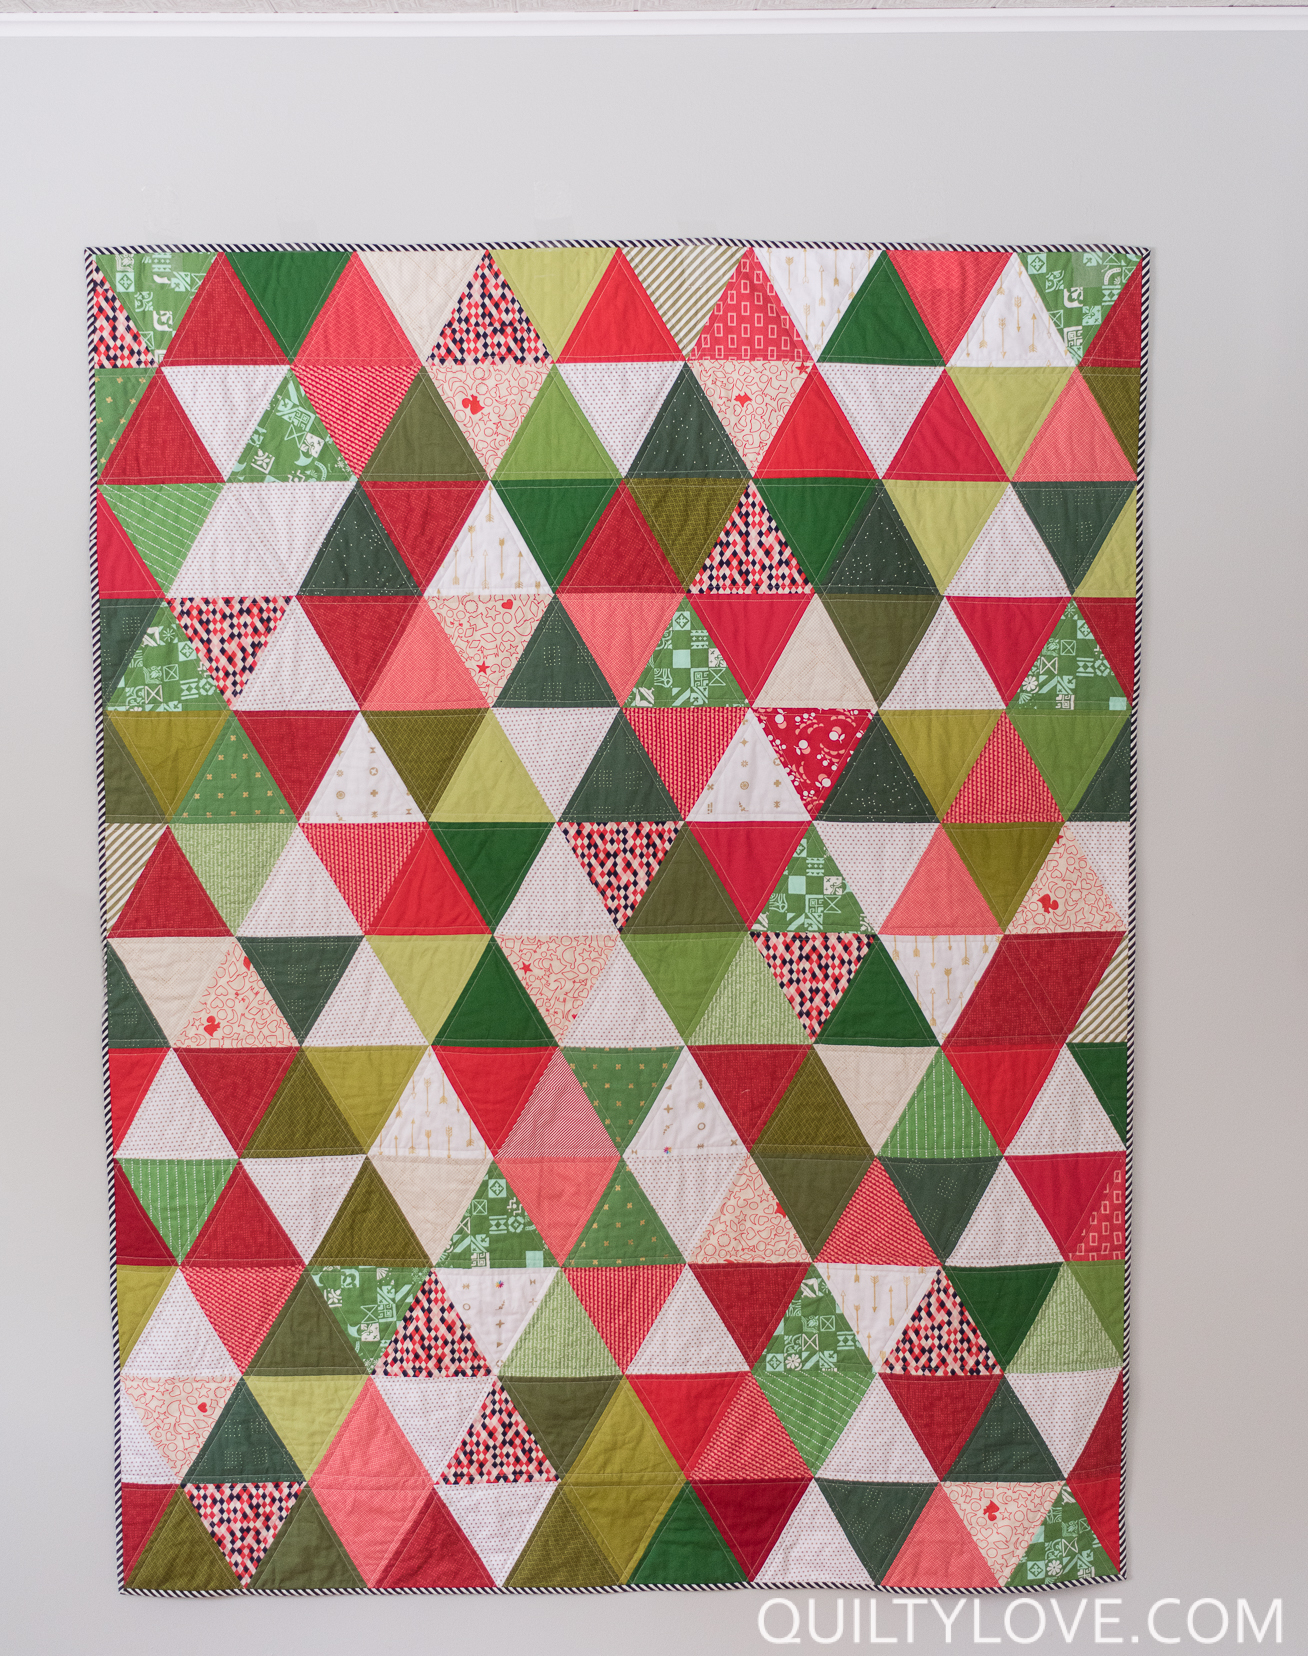 Scrappy Triangle Quilt The Christmas One Quilty Love